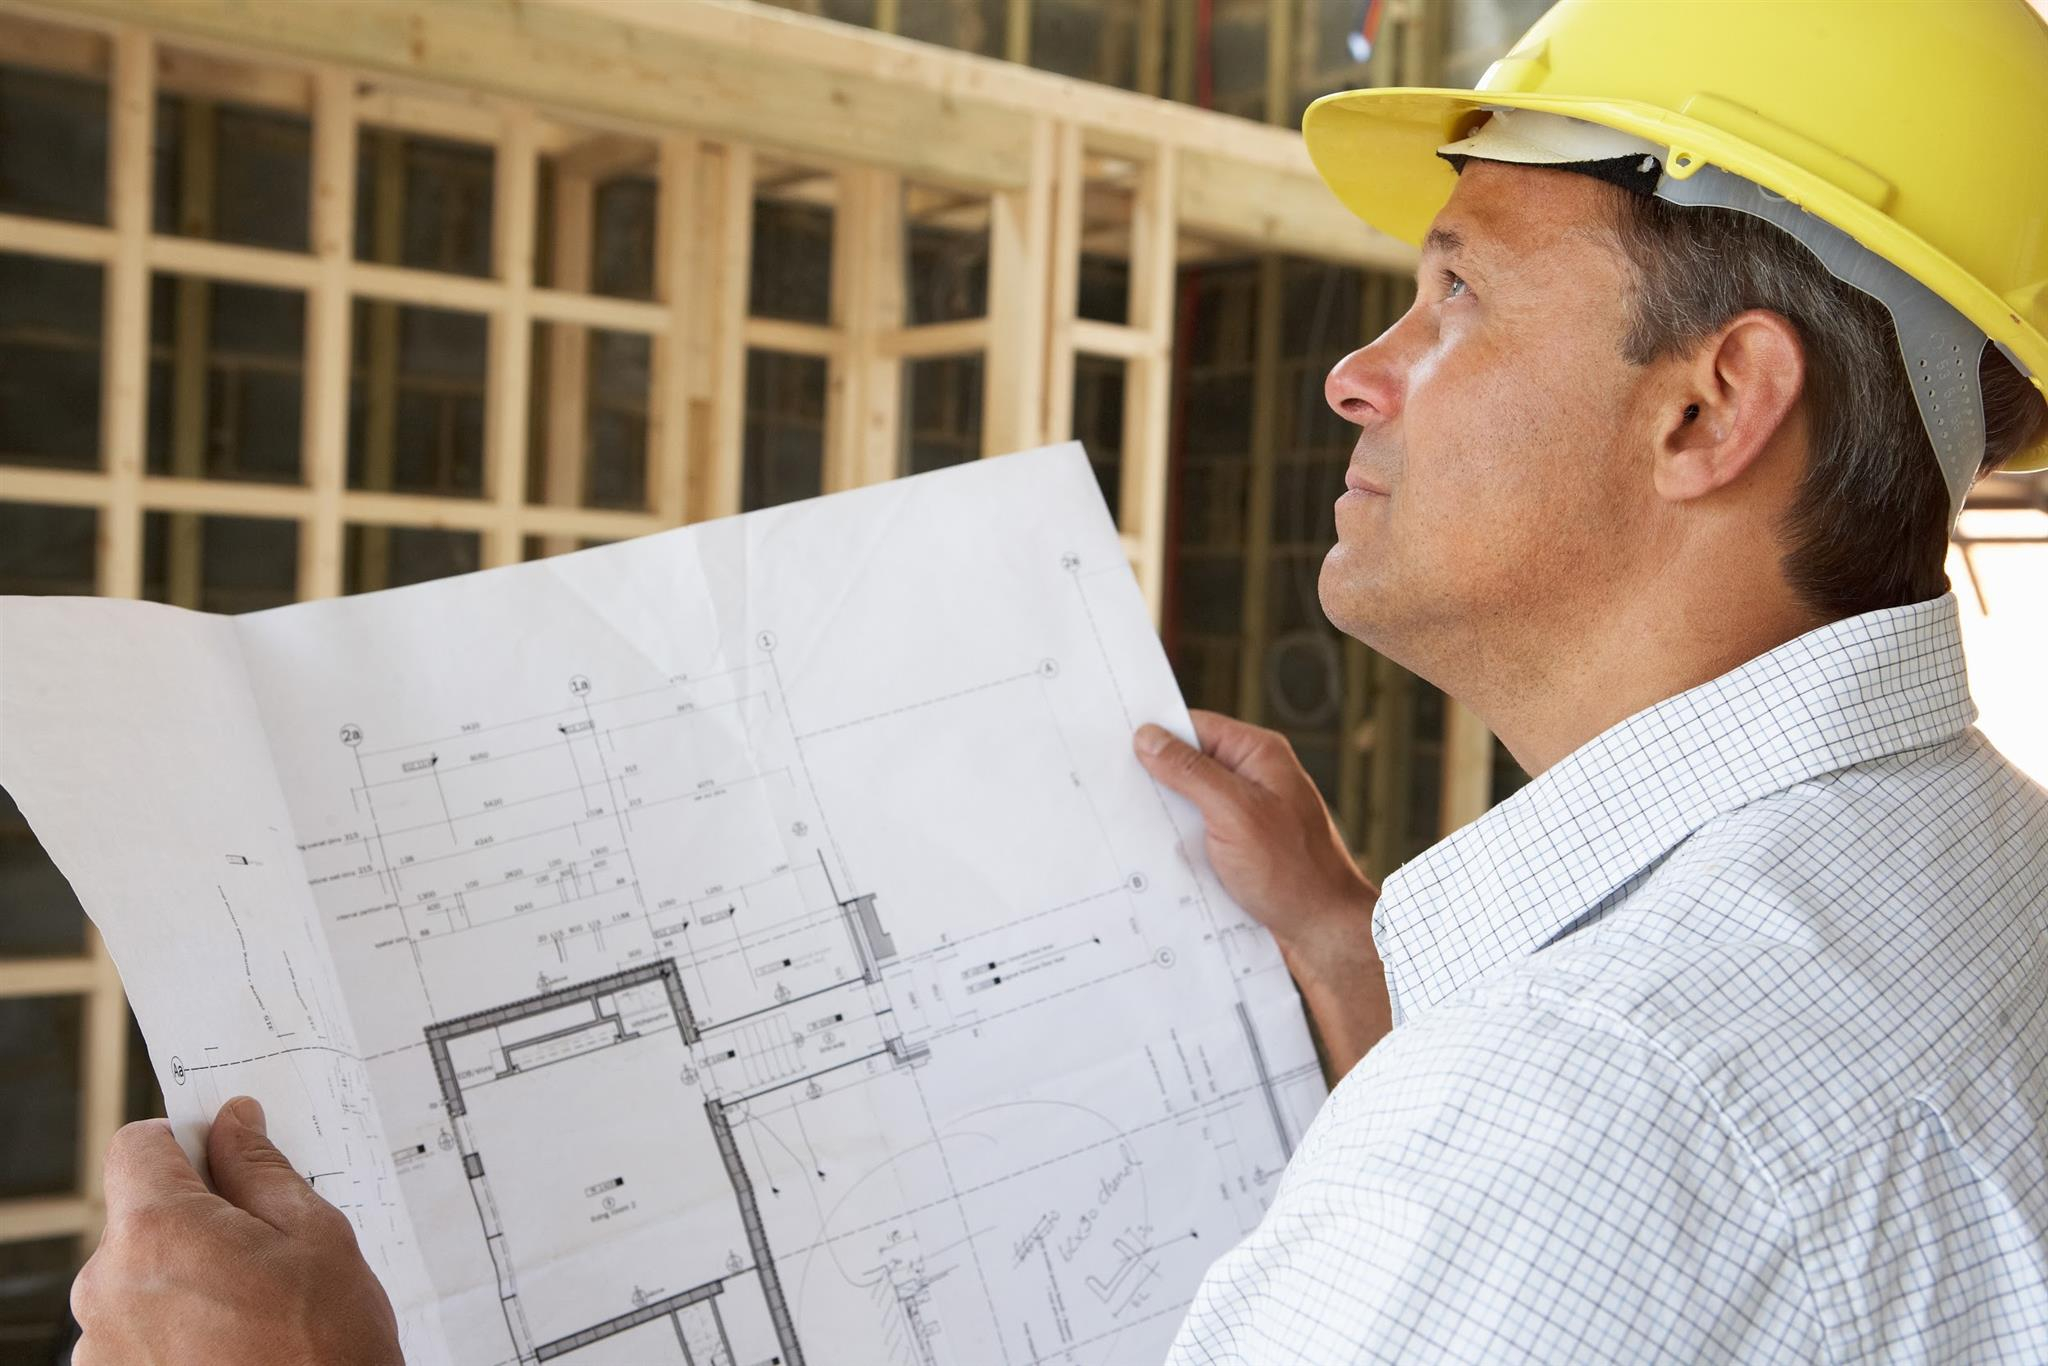 Custom home builder looking at floor plans on new home construction site